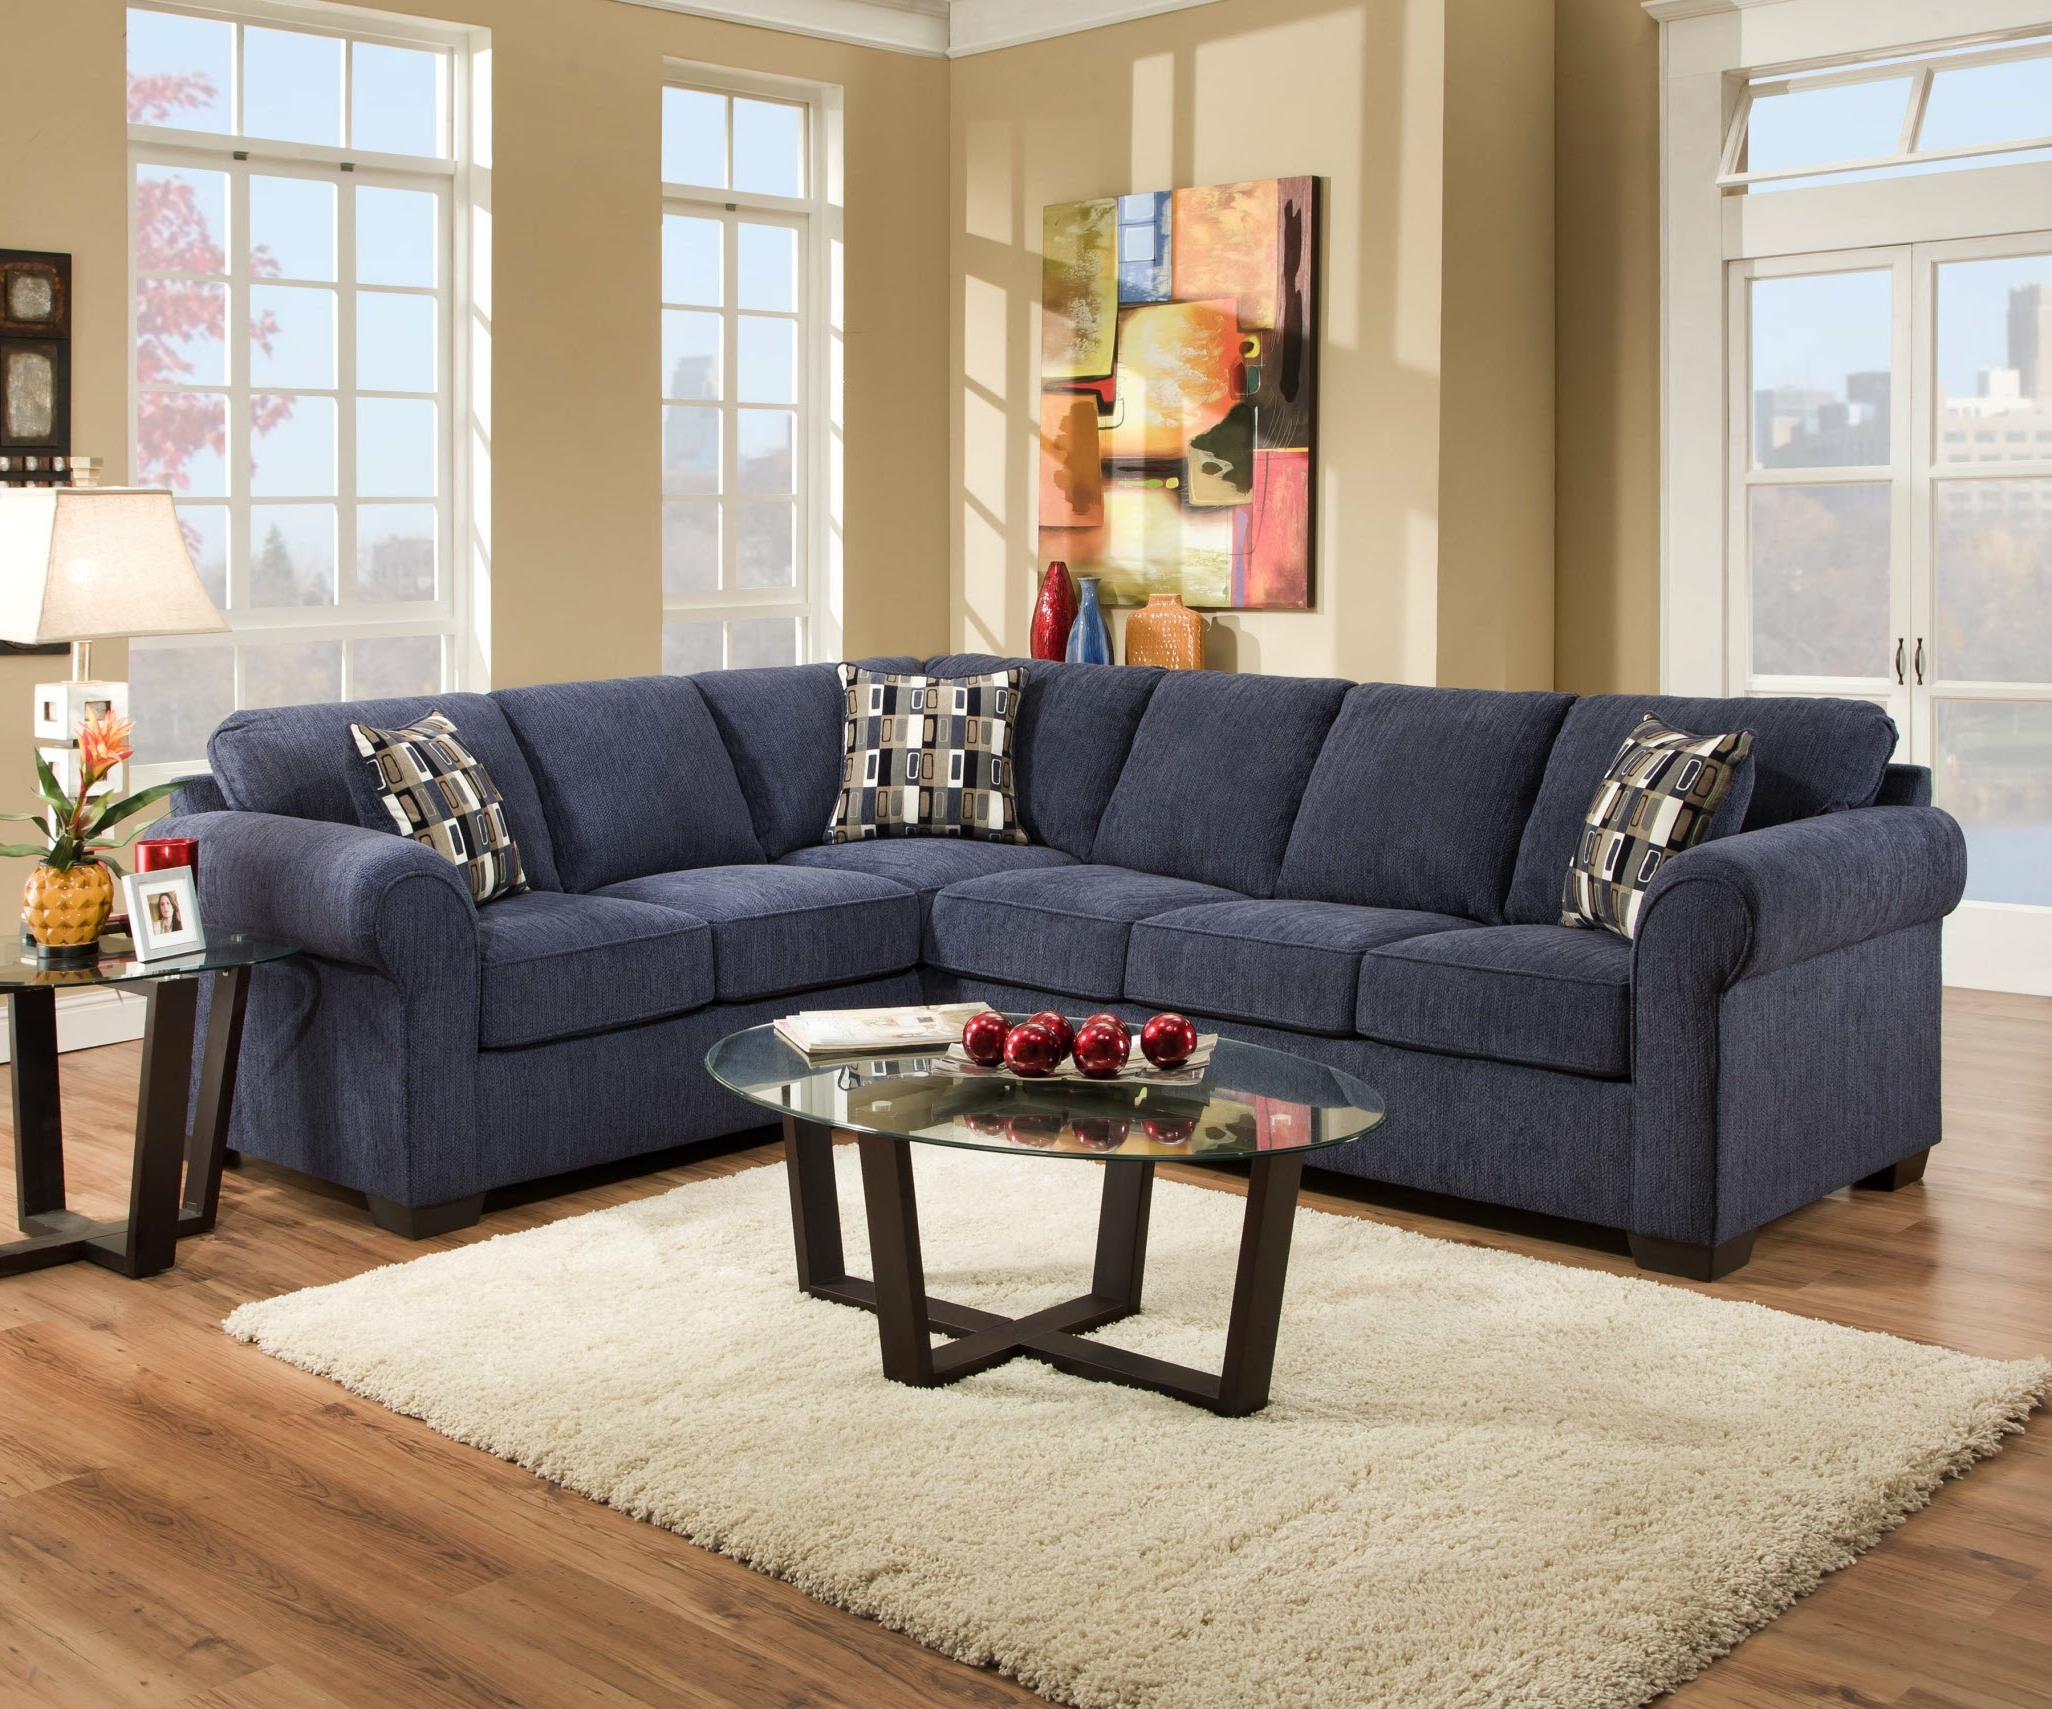 Widely Used Living Room Sofa Beautiful Blue Microfiber Sectional In Sofas Pertaining To Ottawa Sectional Sofas (View 19 of 20)